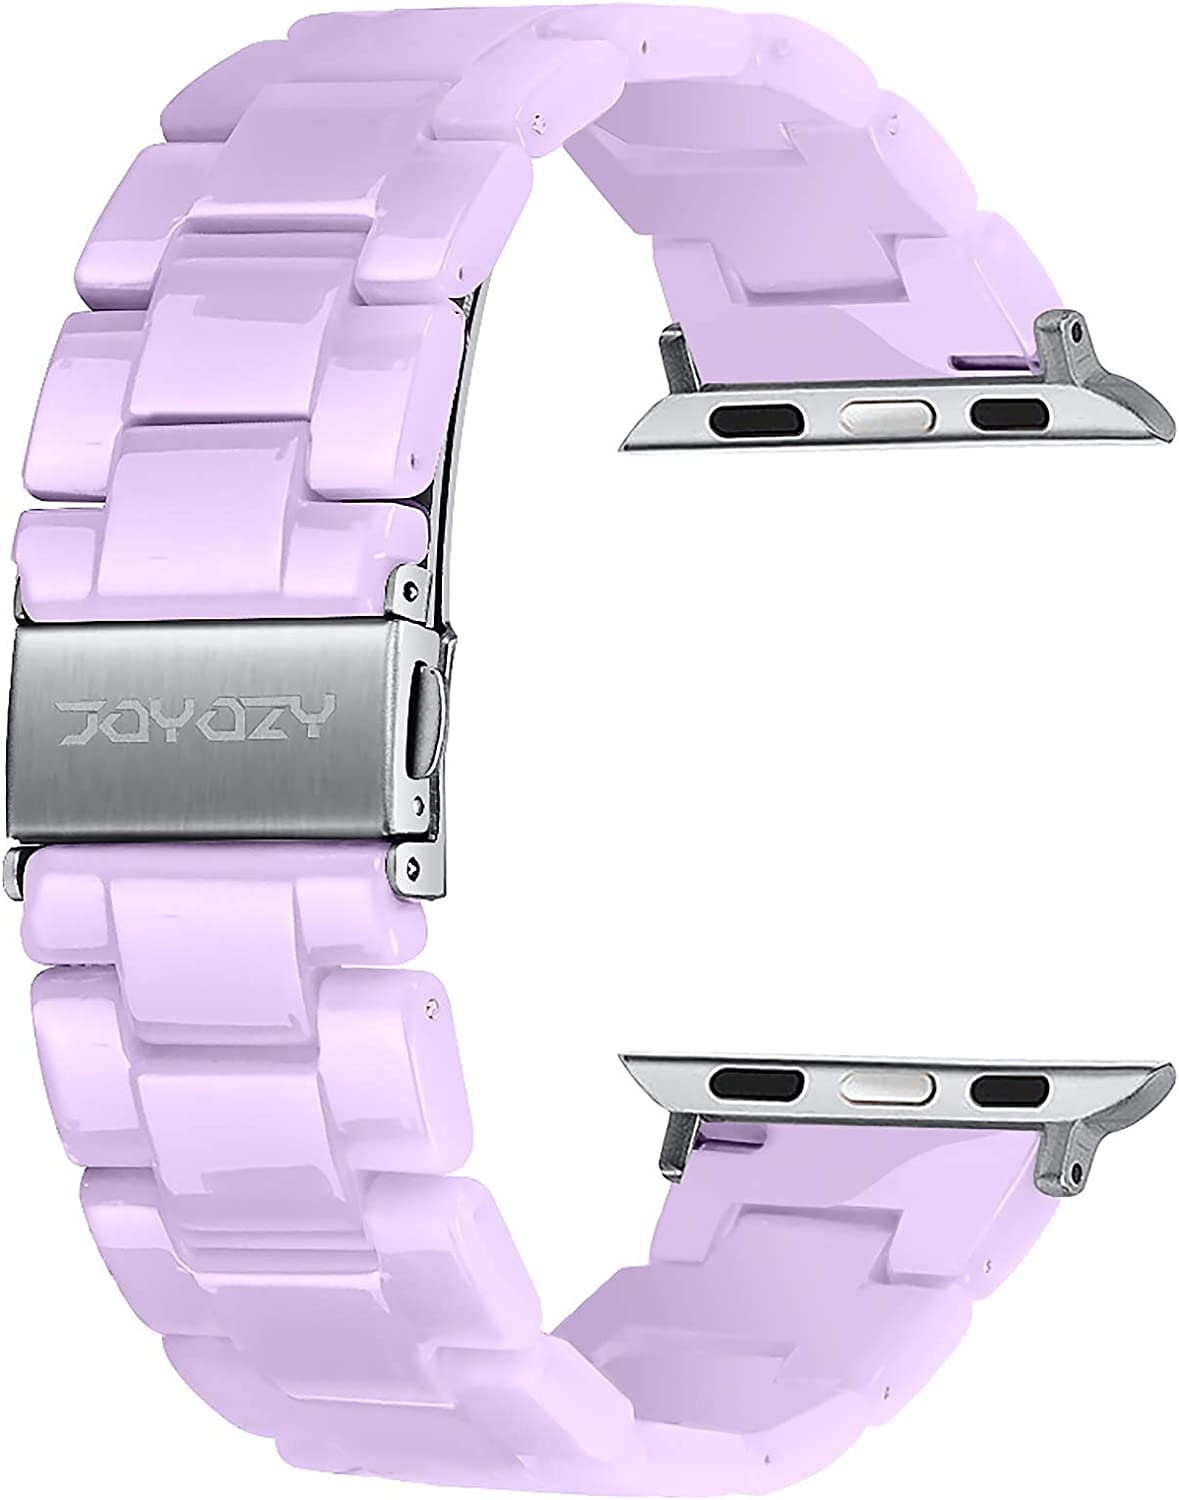 Joyozy Compatible with Apple Watch Bands 38mm 40mm 42mm 44mm, Resin Wristbands Replacement for iWatch SE& Series 6/5/4/3/2/1 for Women Men Gift Fashion Bracelet-(38mm/40mm, Lavender Purple)